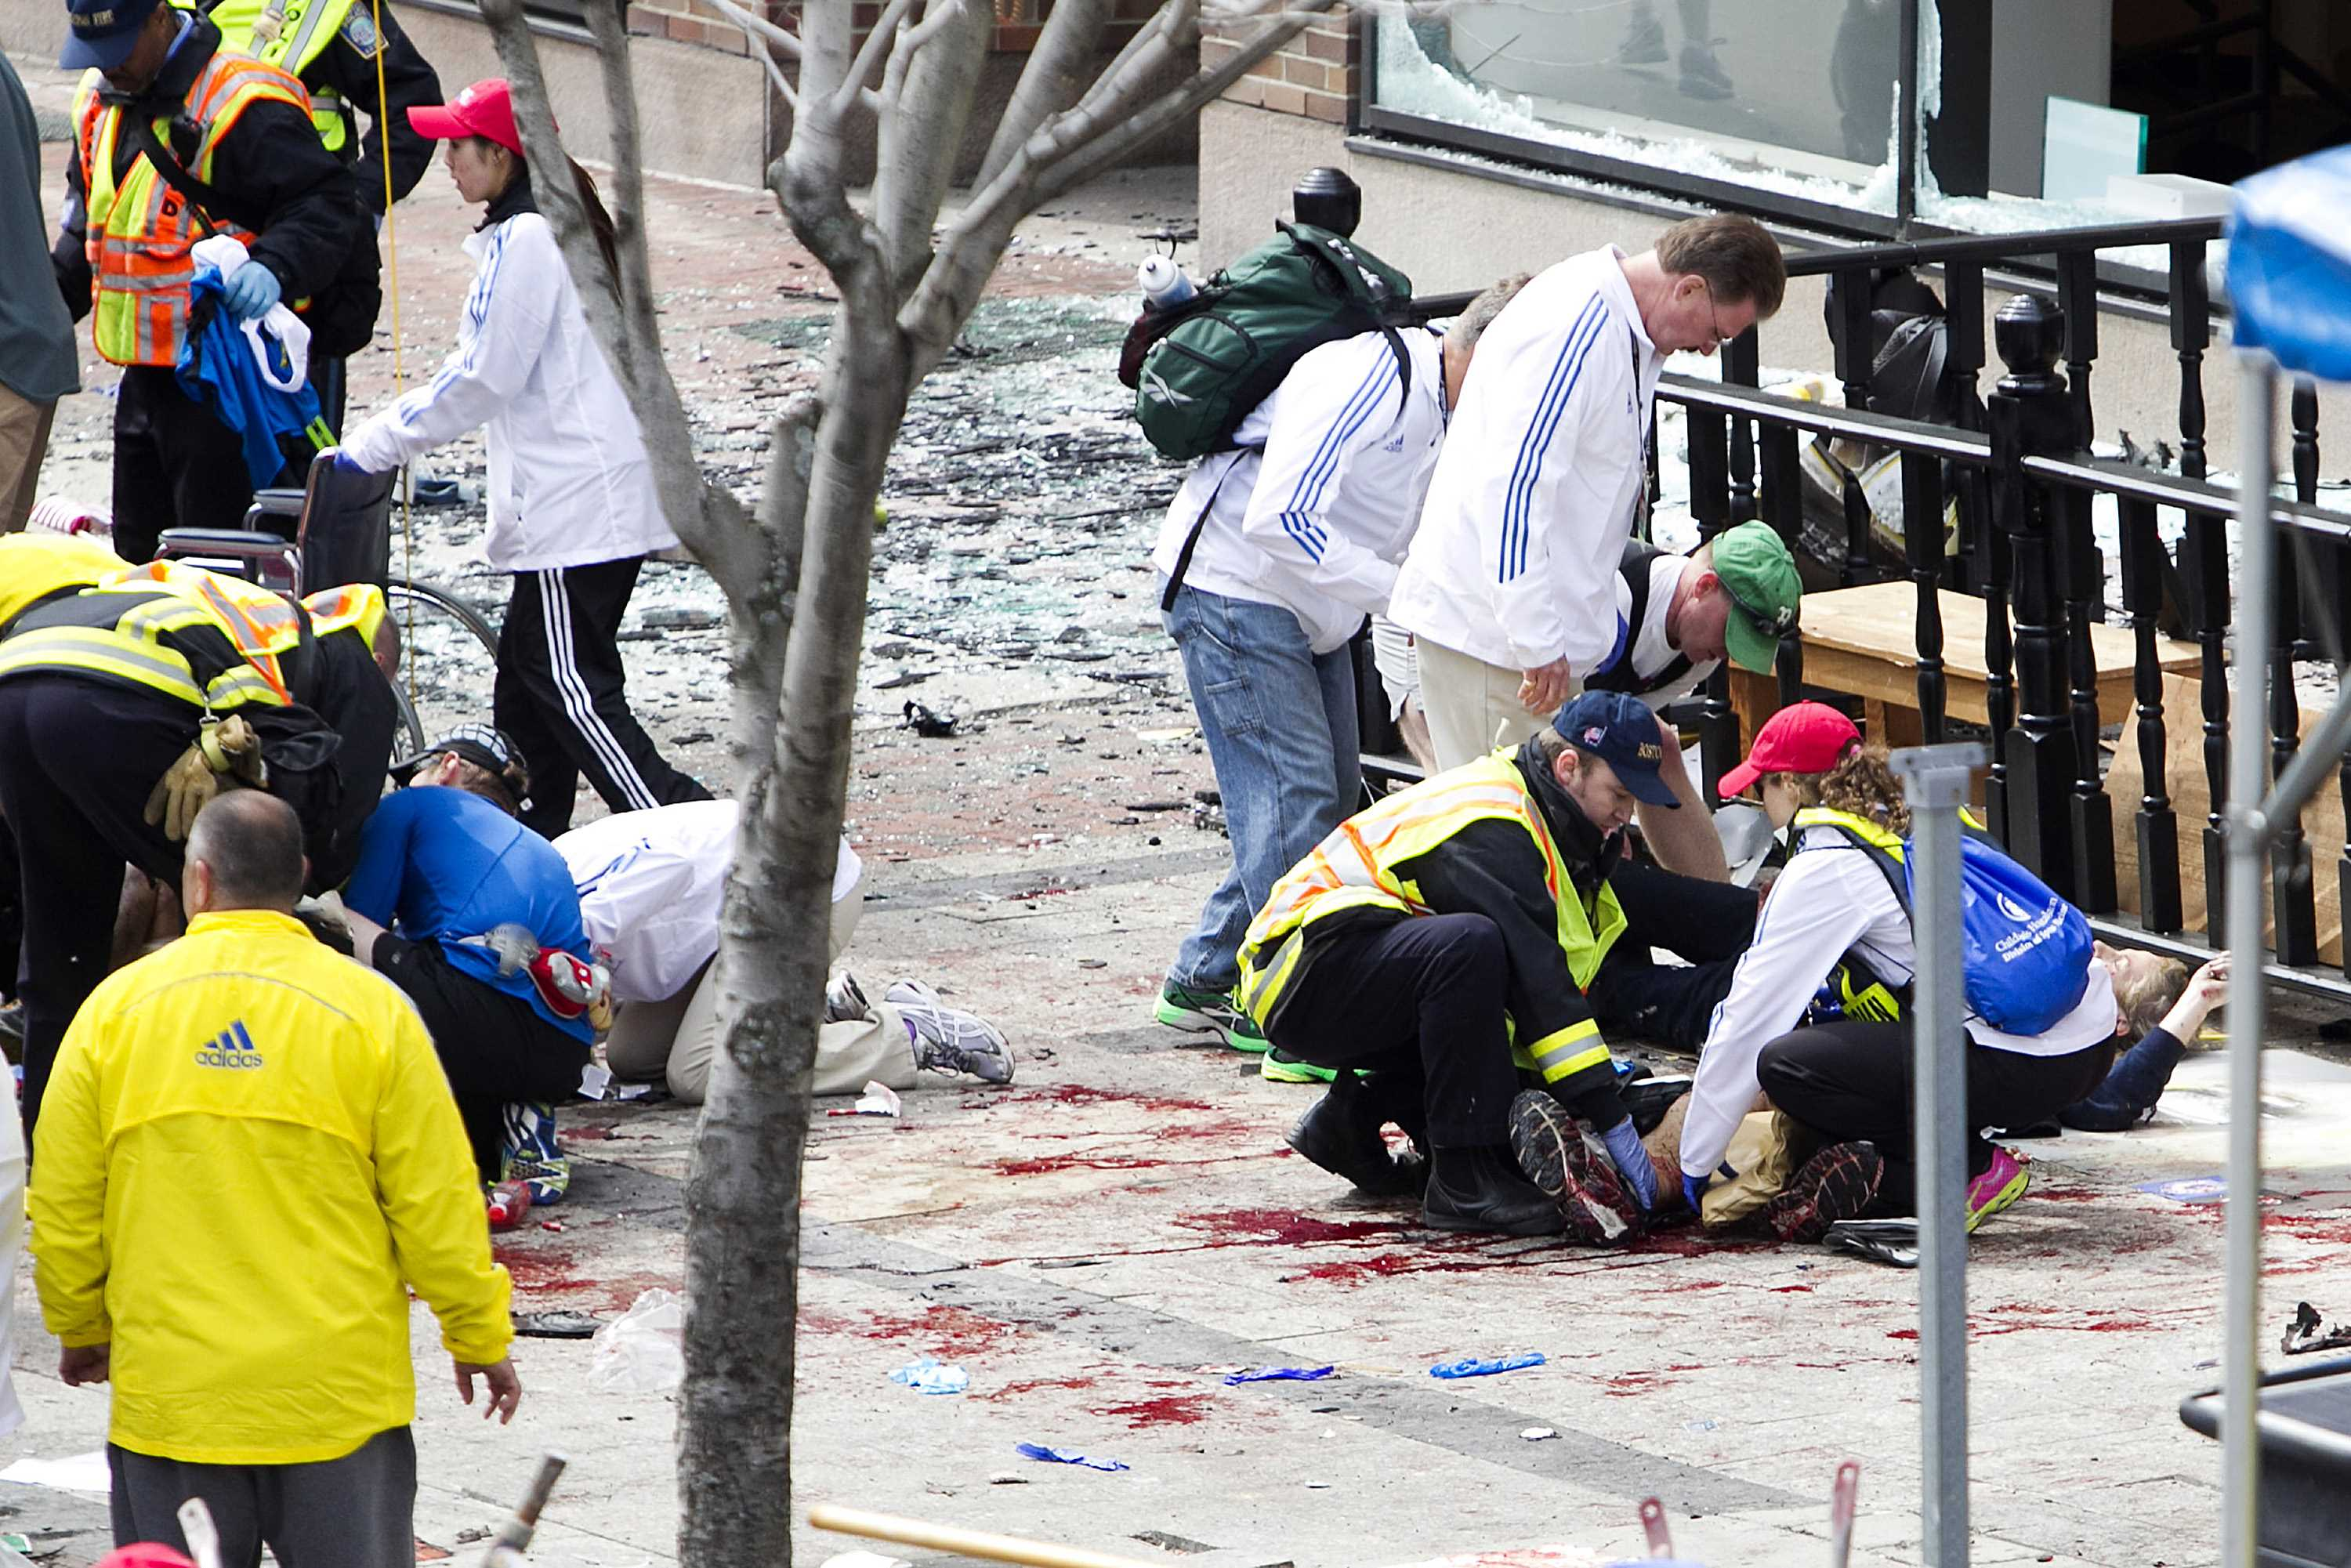 Boston bombing presents big unknown for insurers